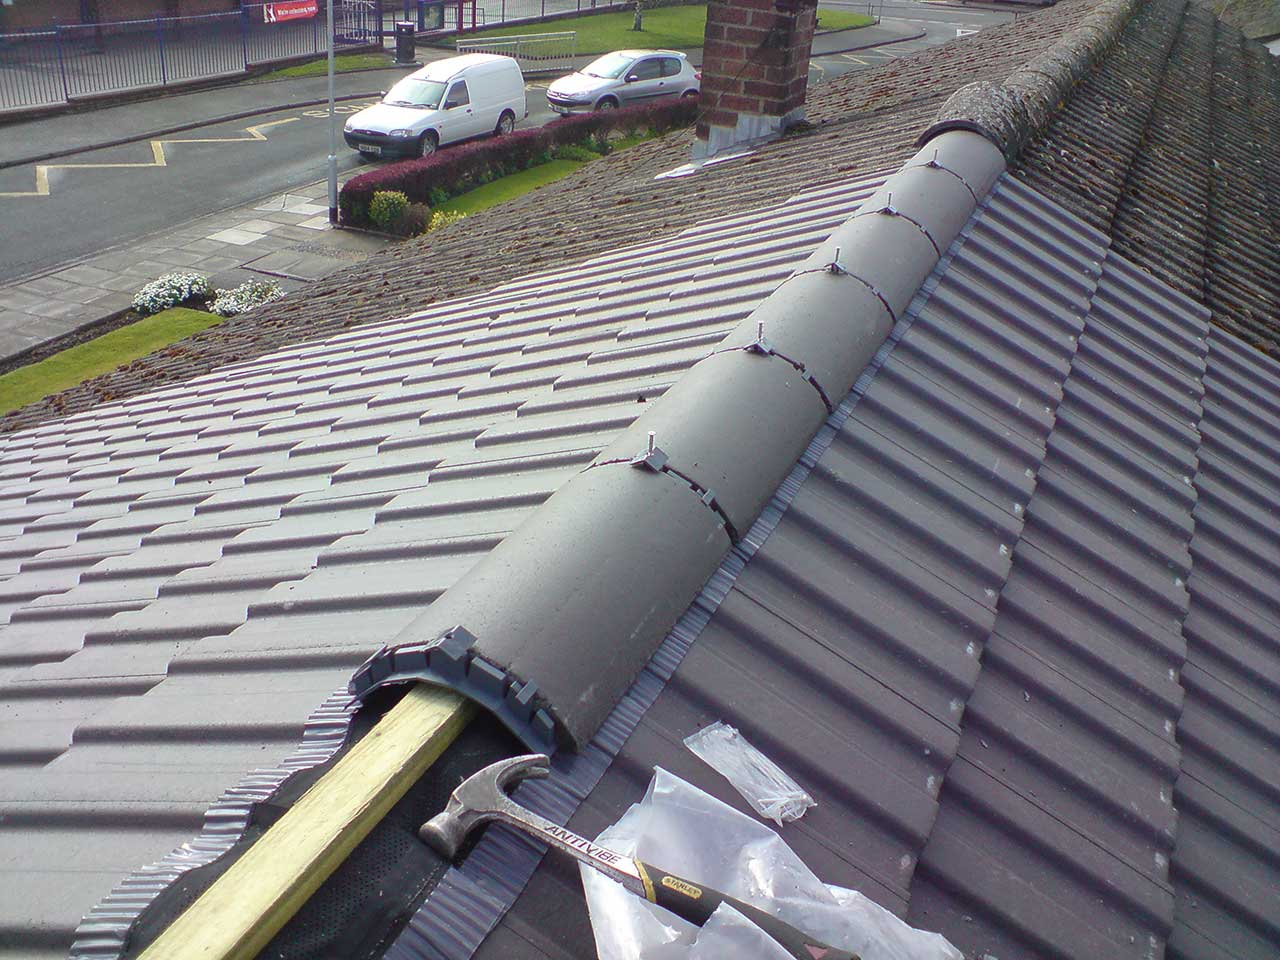 A tile roof being repaired.